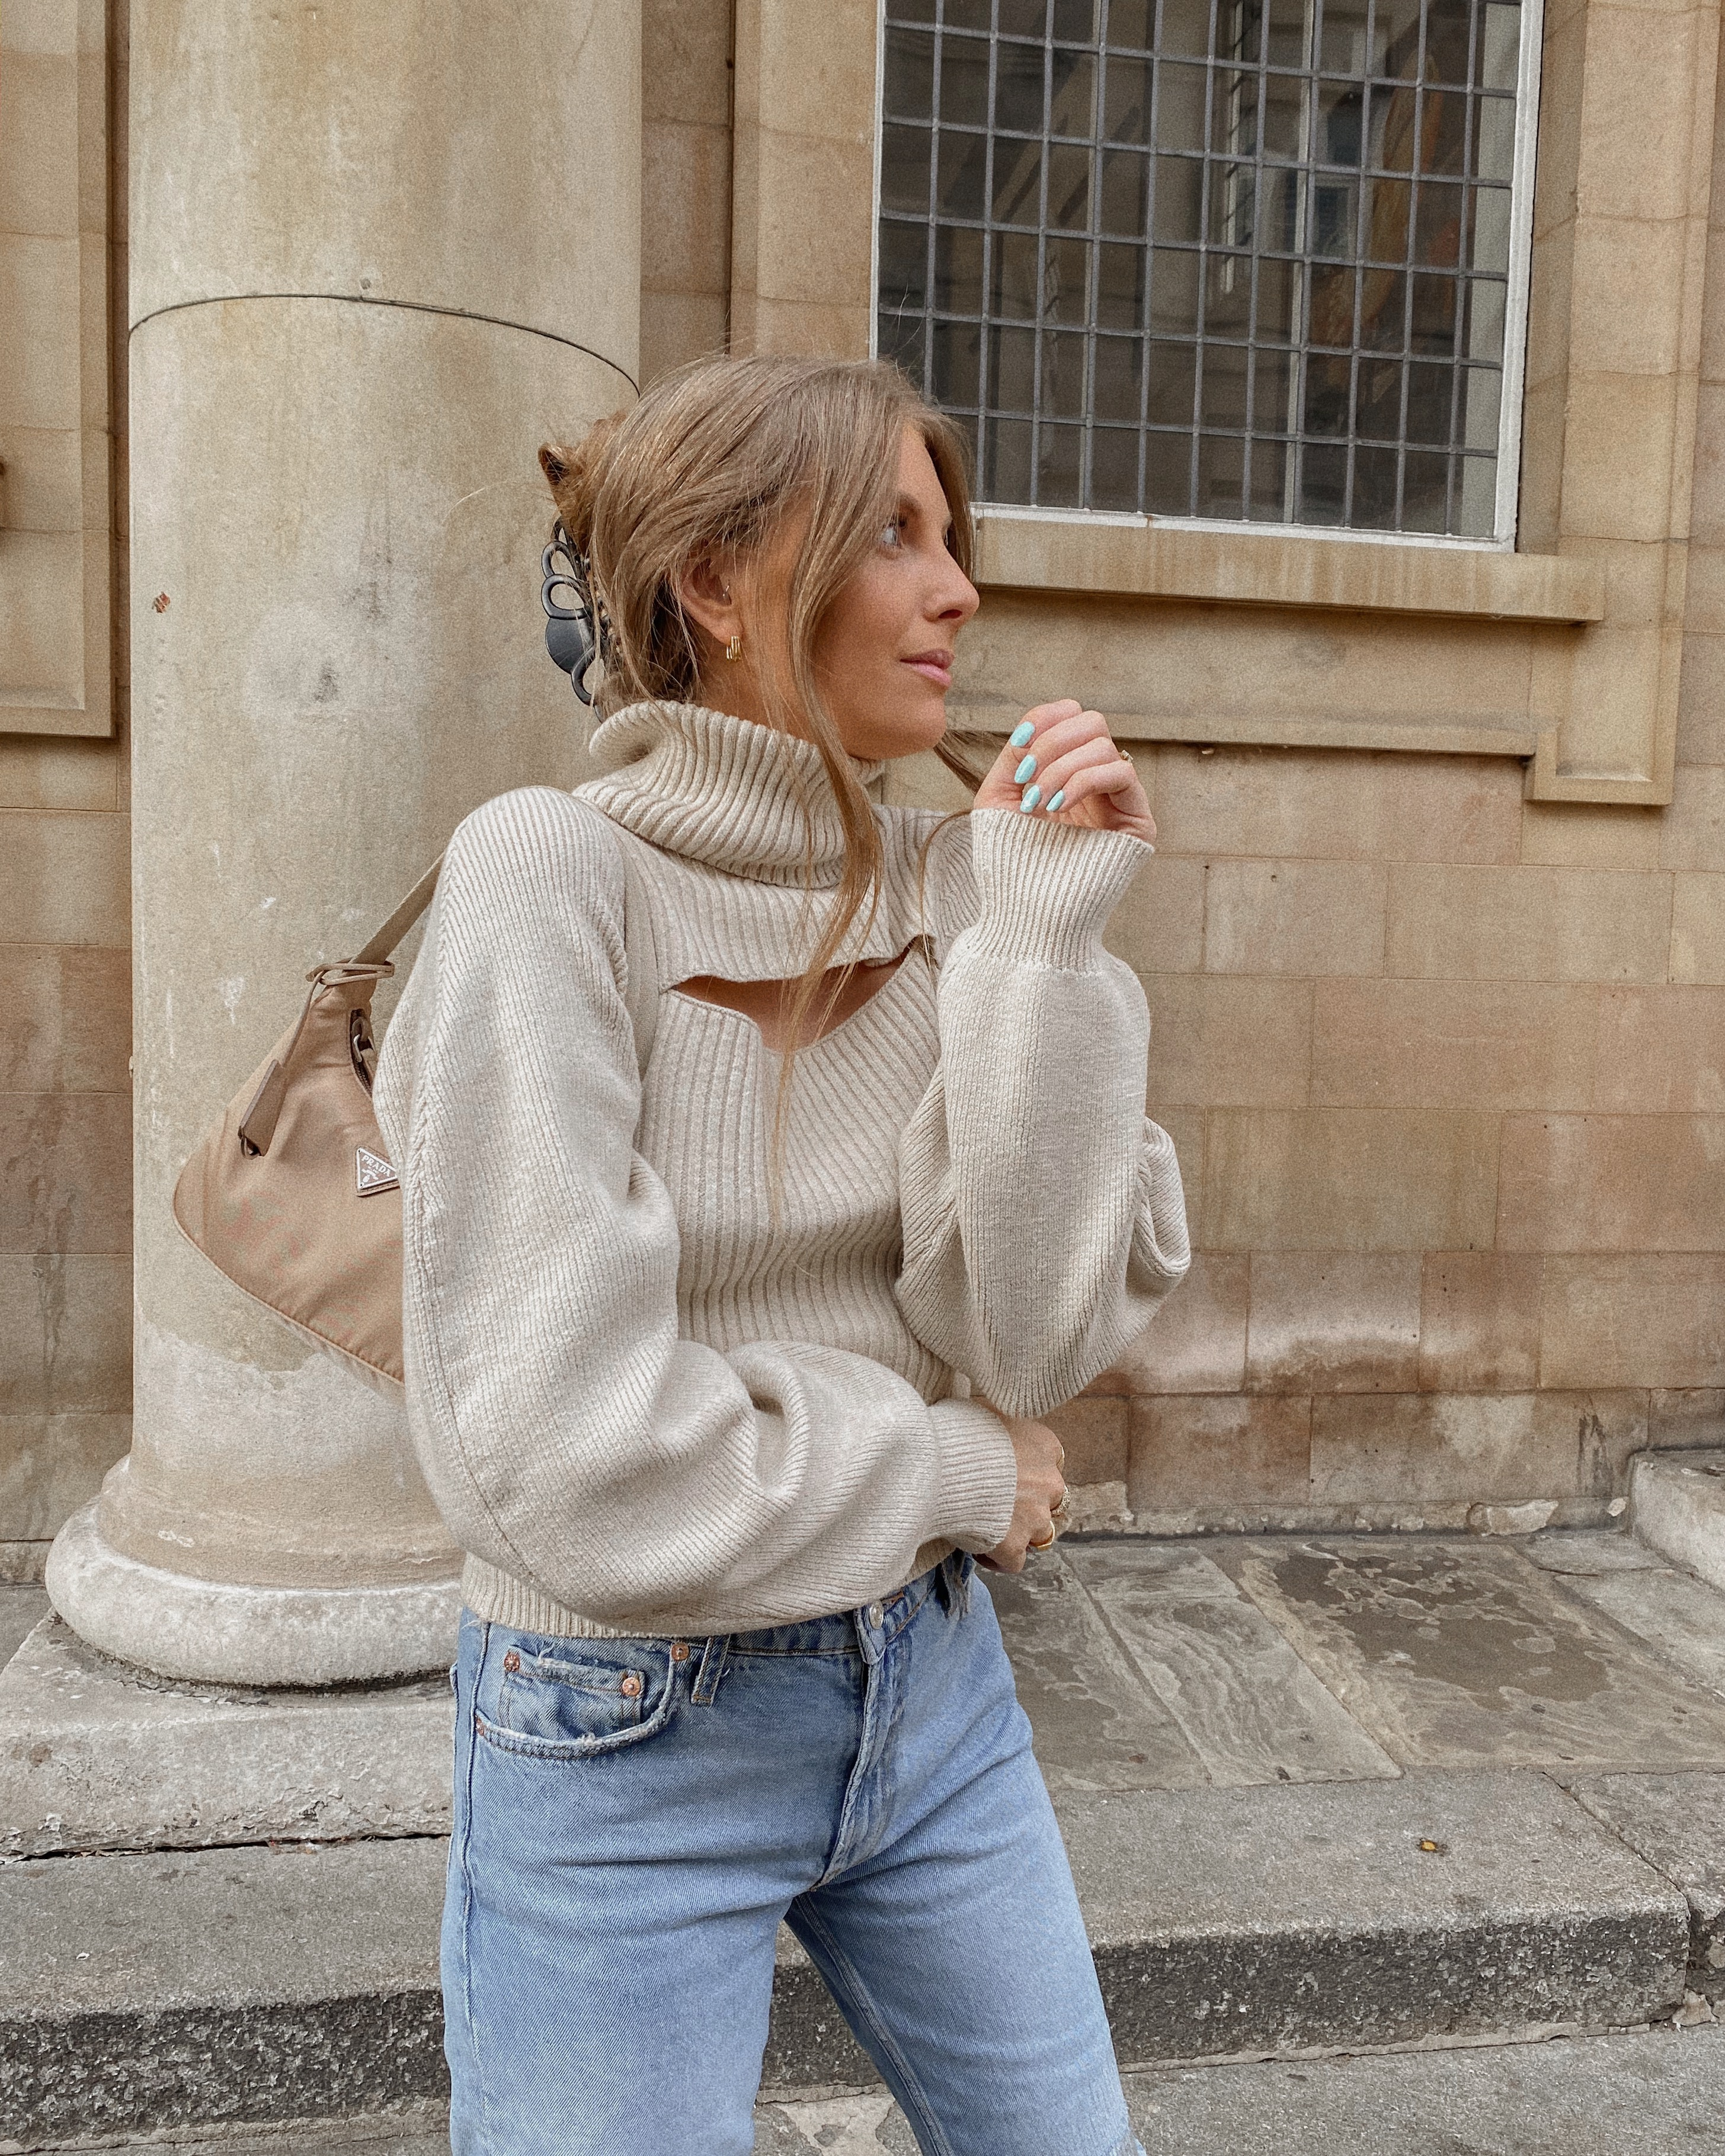 Autumn Knits - Free People Cut Out Jumper